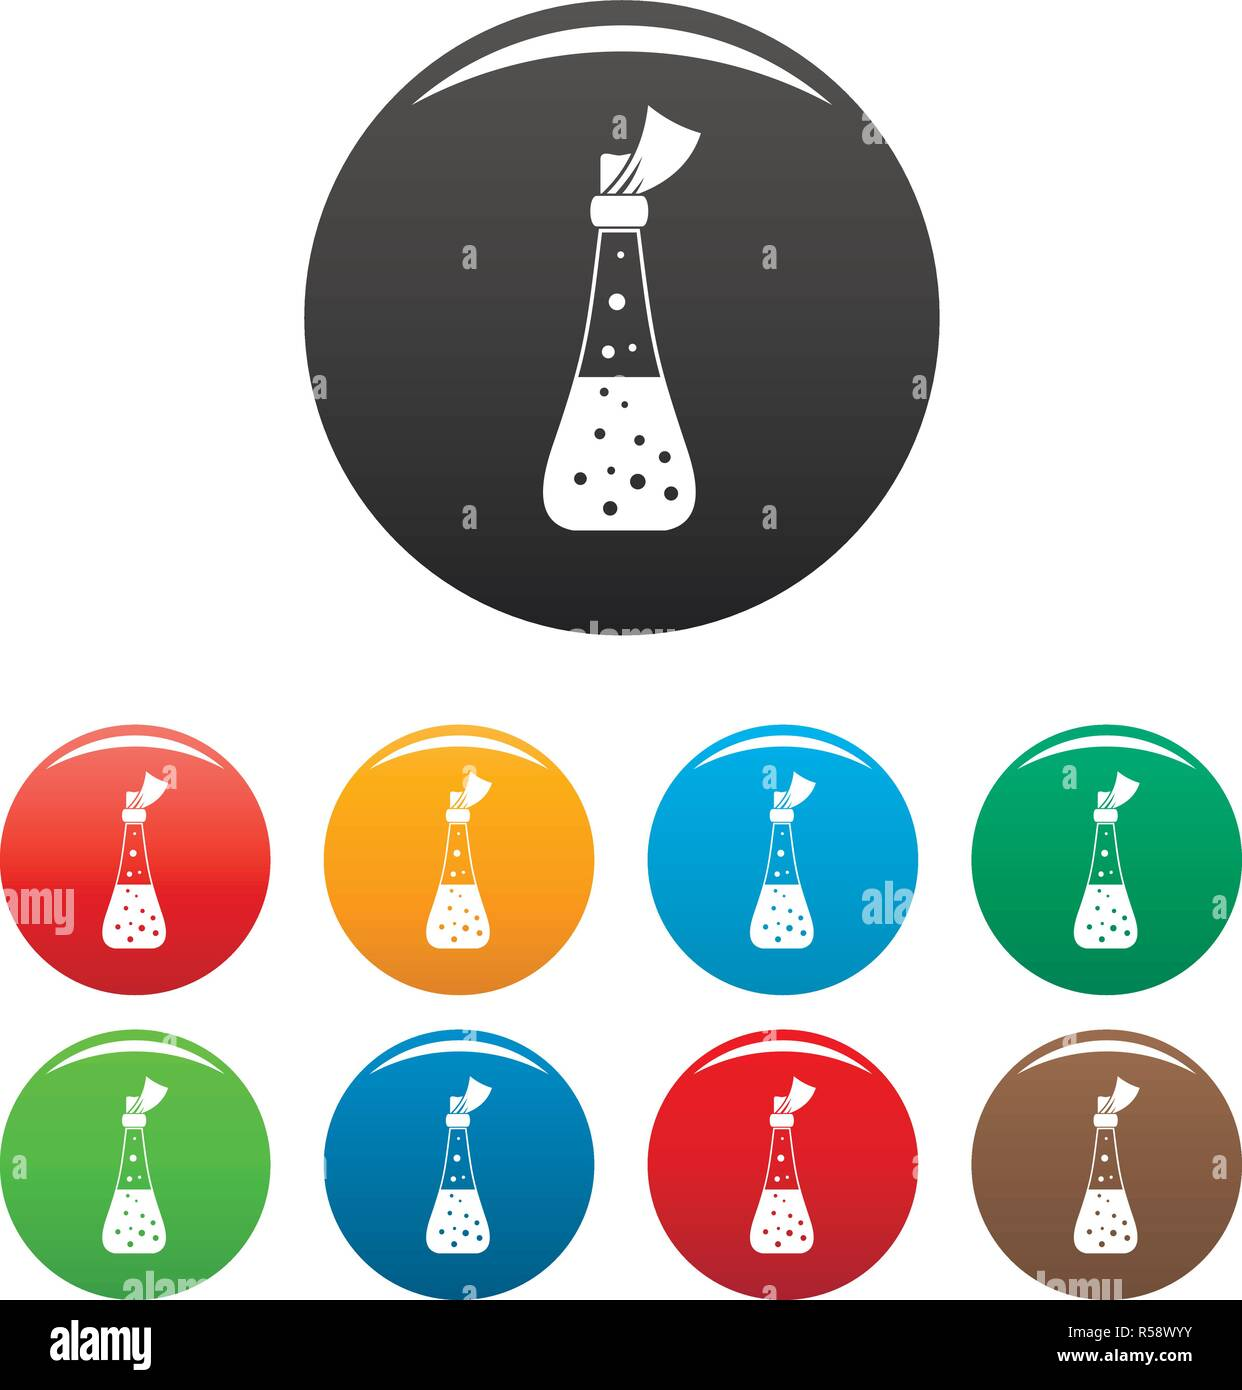 Alchemy potion icons set 9 color vector isolated on white for any design - Stock Image